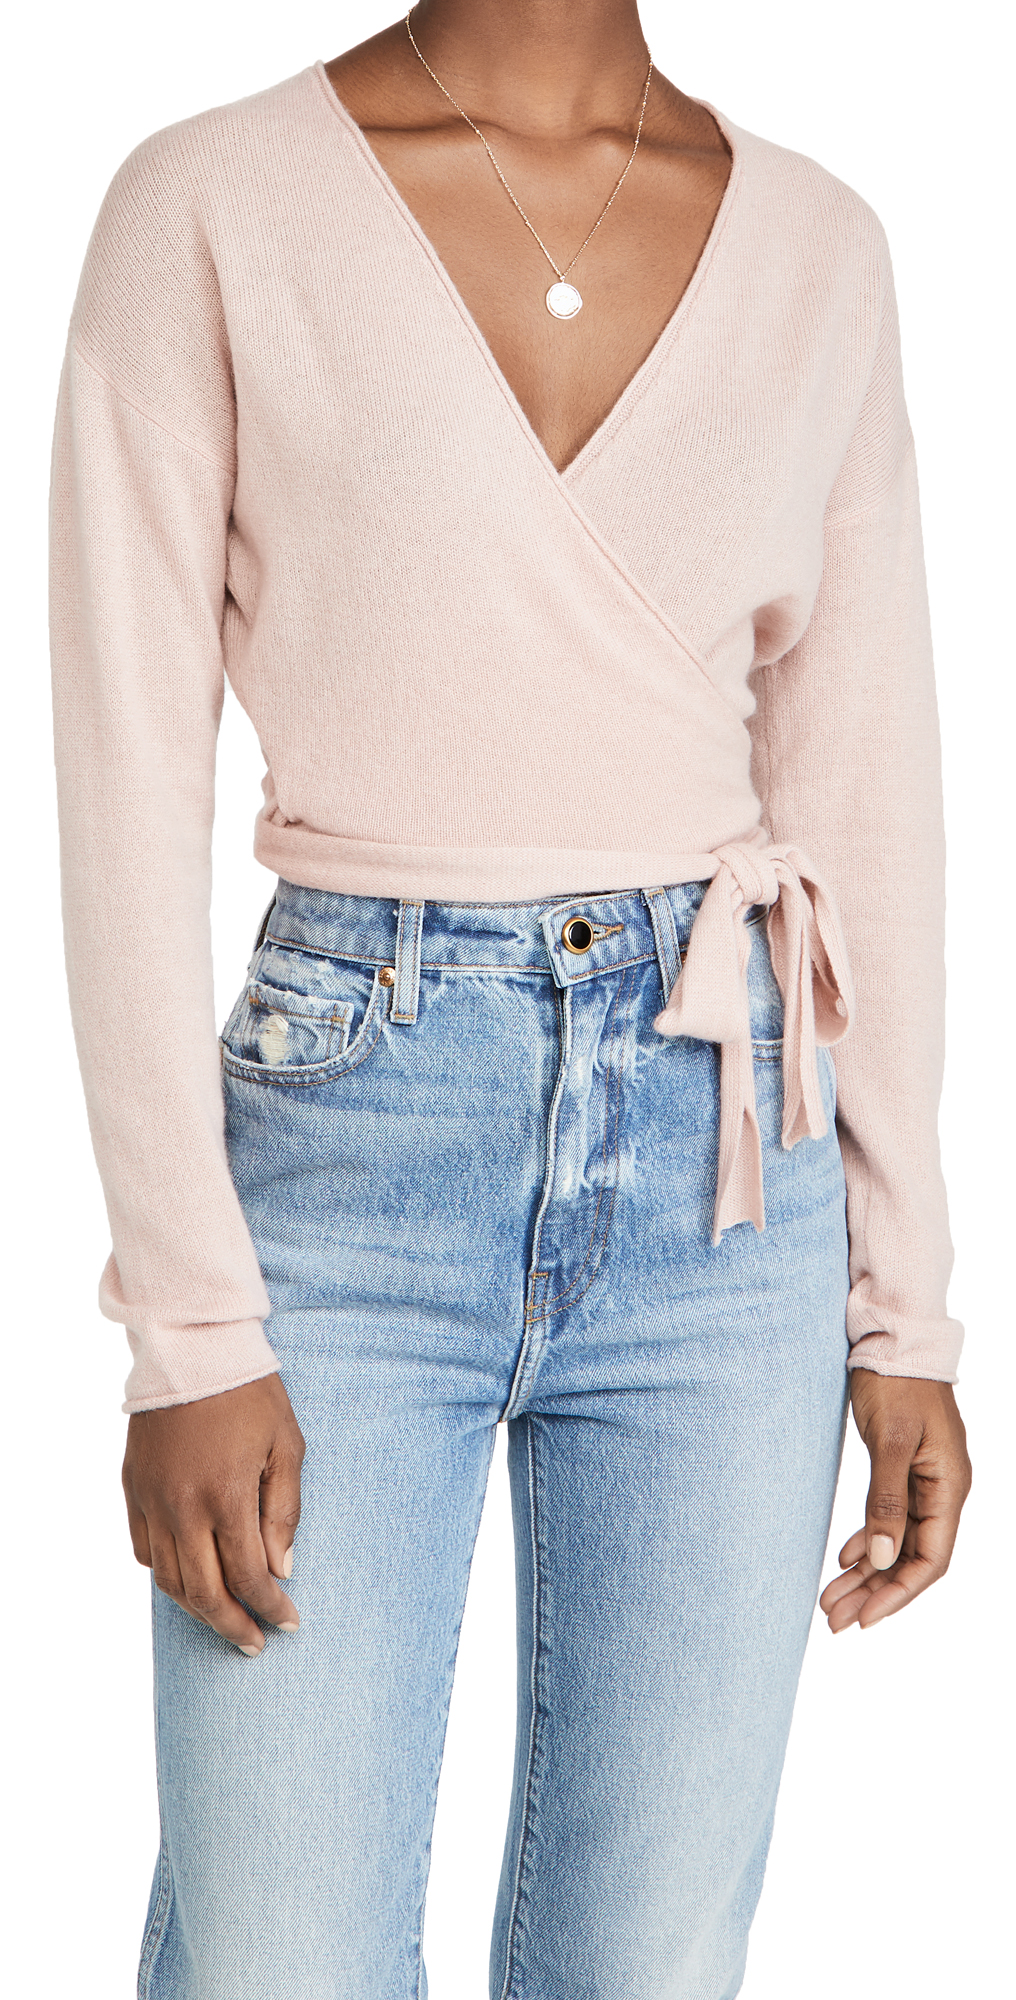 Reformation Relaxed Cashmere Wrap Sweater